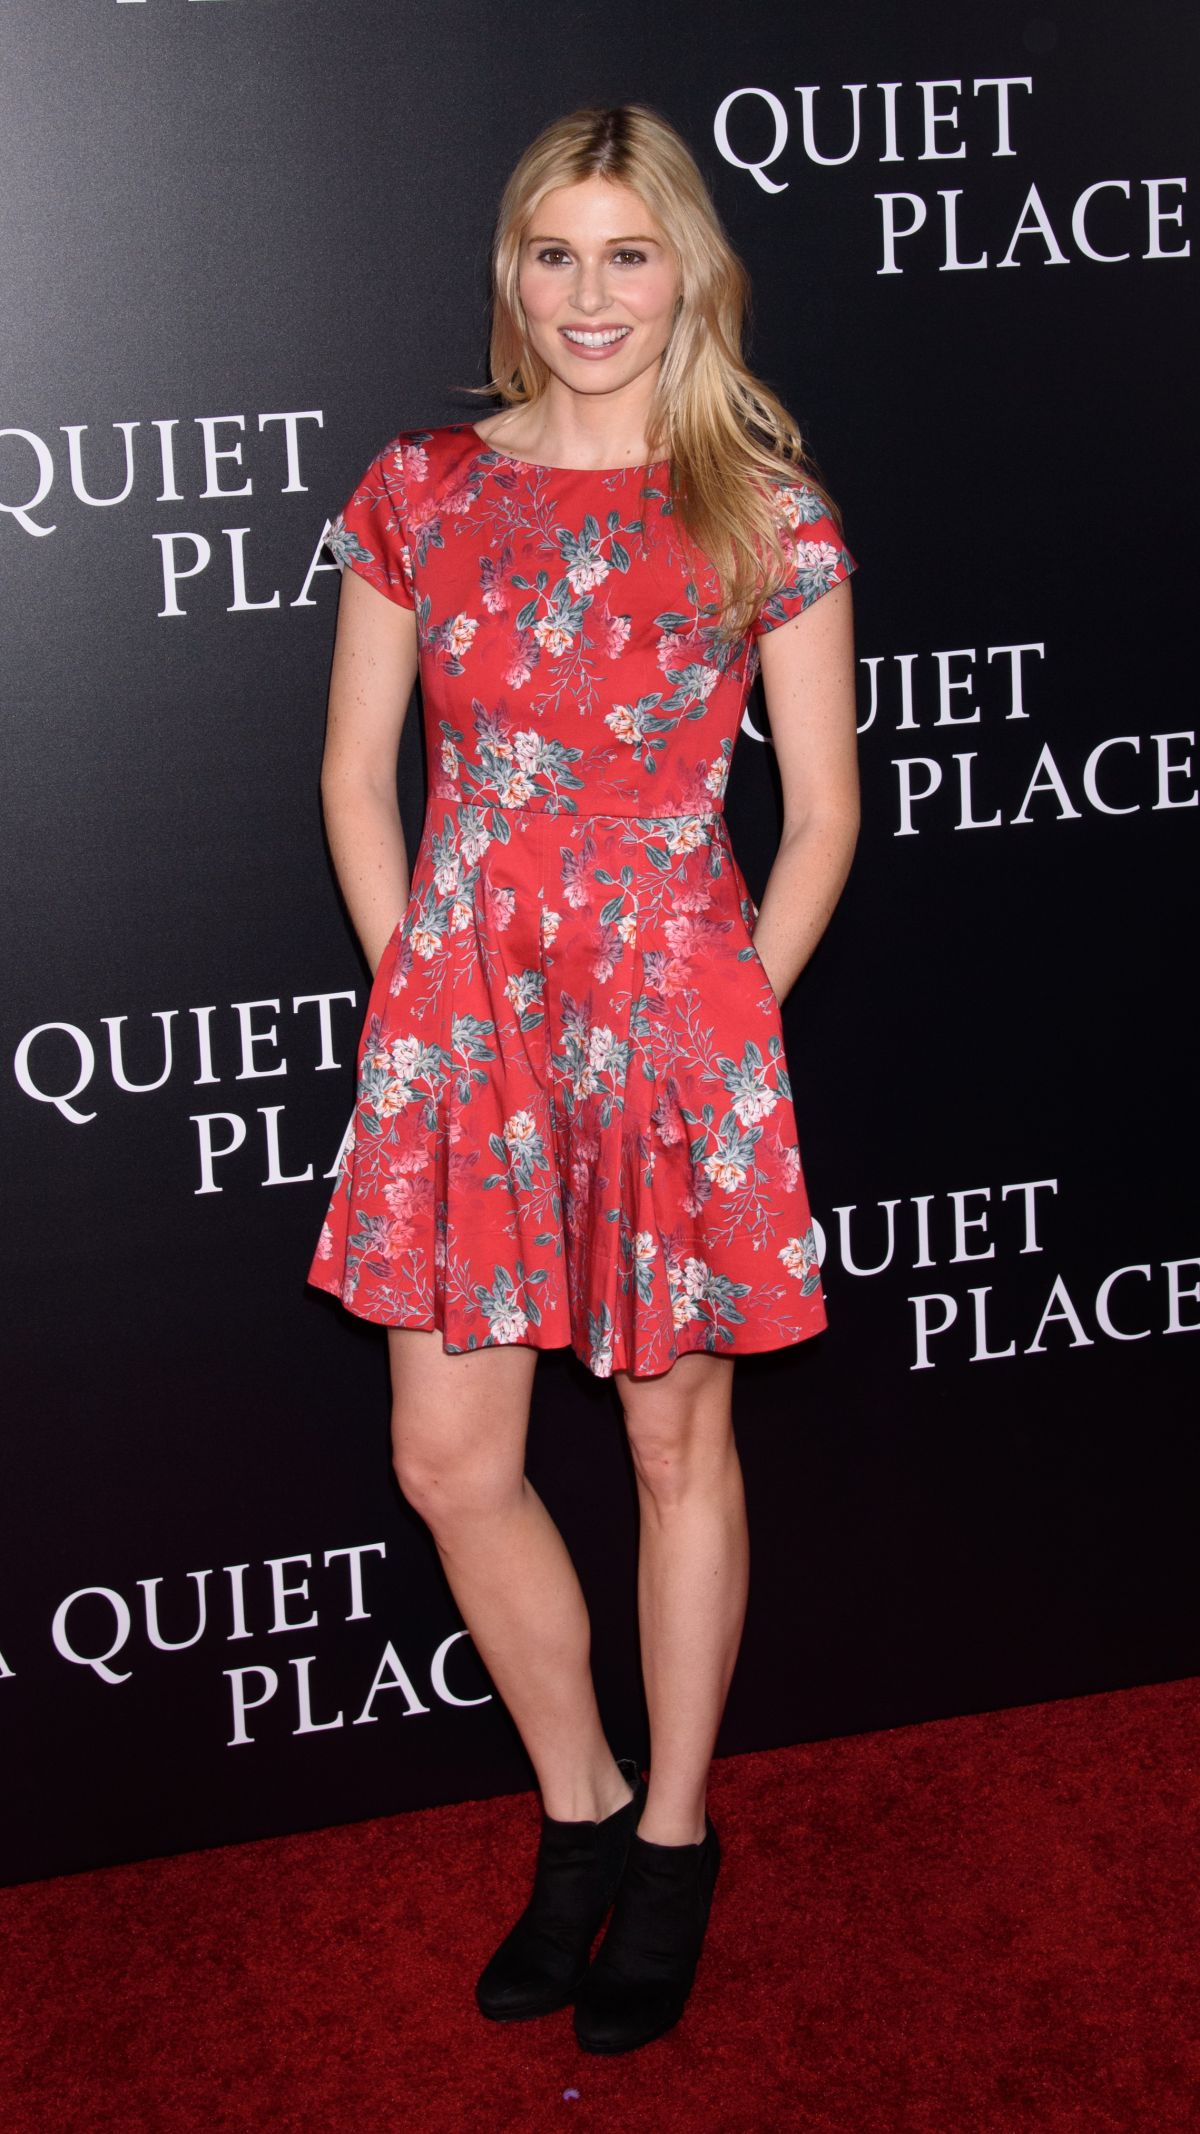 comfort clinton at a quiet place premiere in new york 04